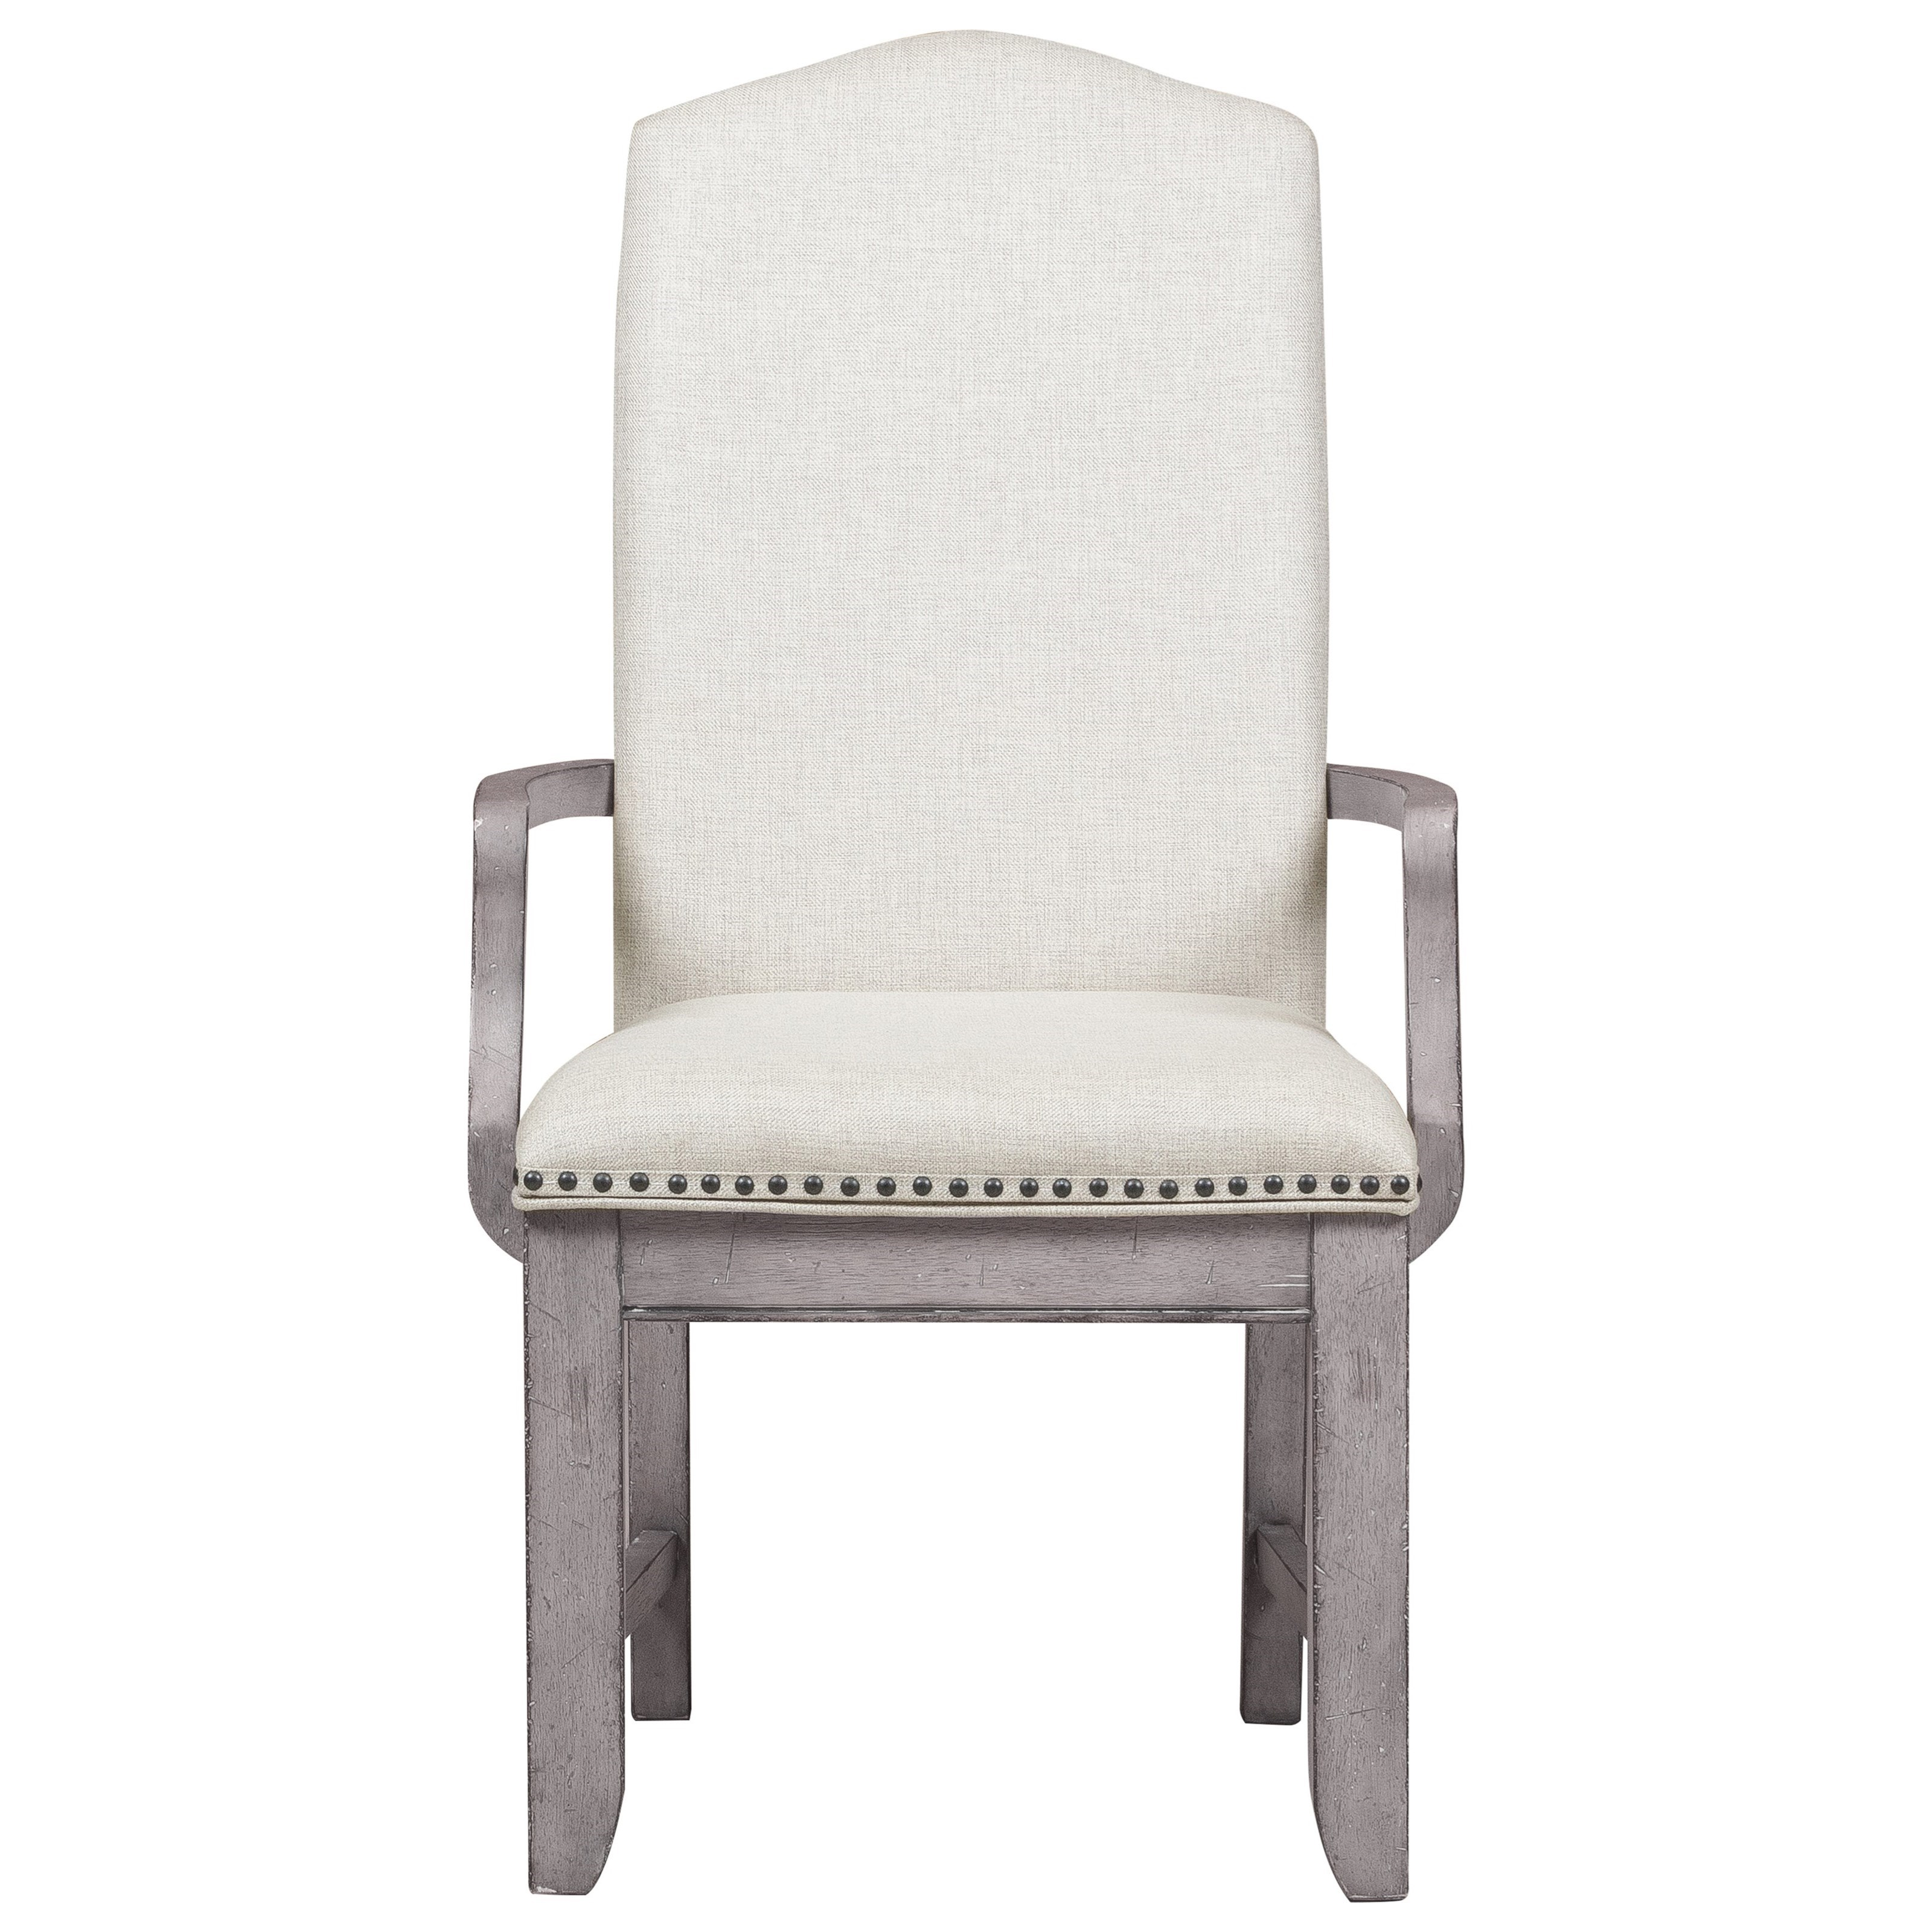 Samuel Lawrence Prospect Hill Upholstered Arm Chair With Nail Head Trim Adcock Furniture